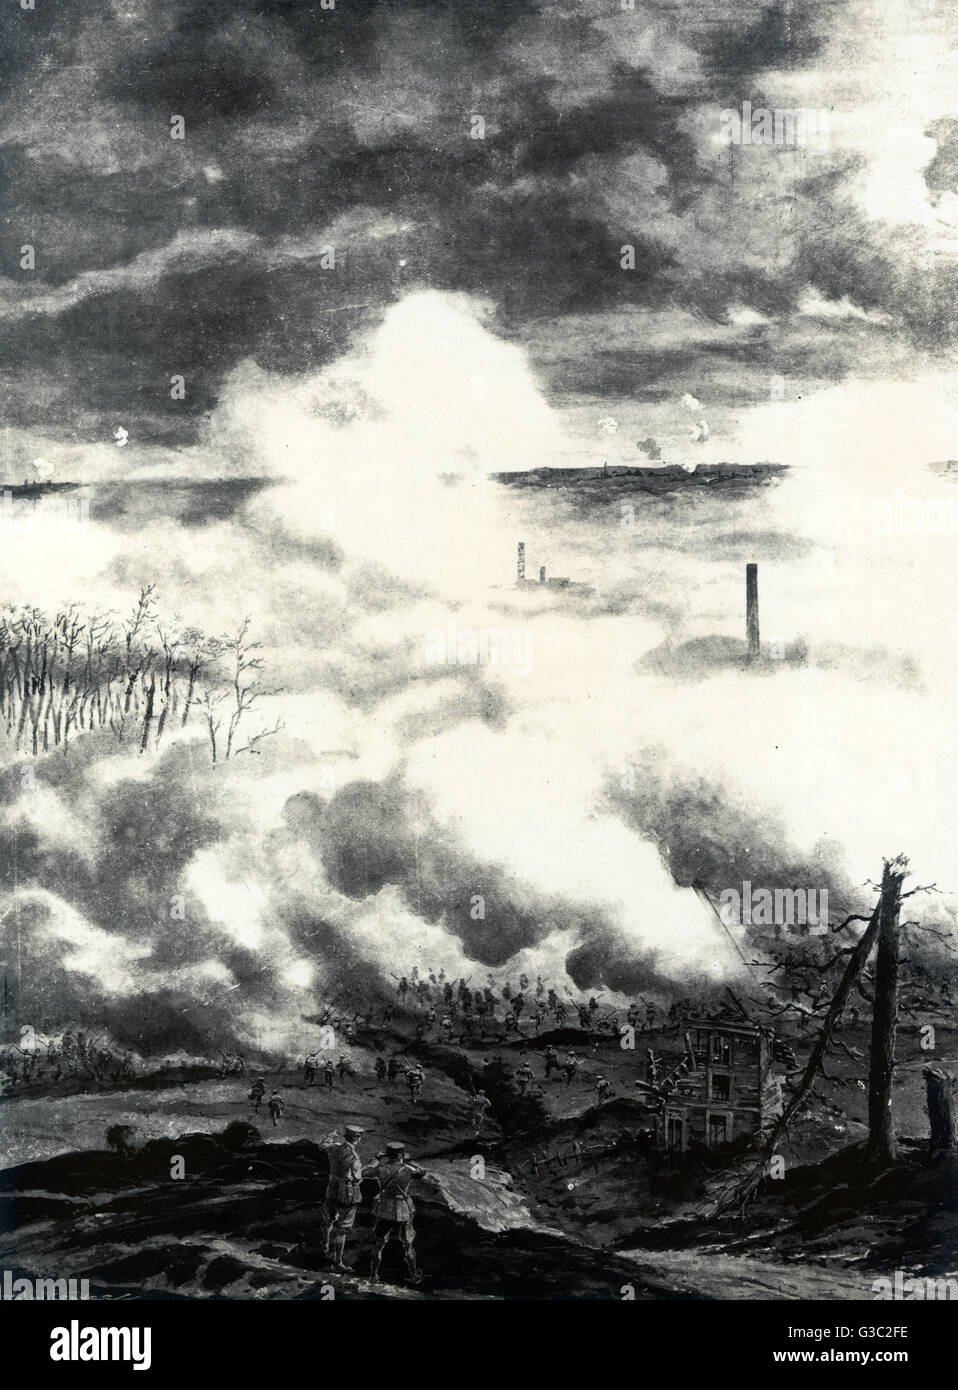 WW1 - The British army charging under cover a cloud of gas smoke, using the German Infantry's battle tactics - Stock Image